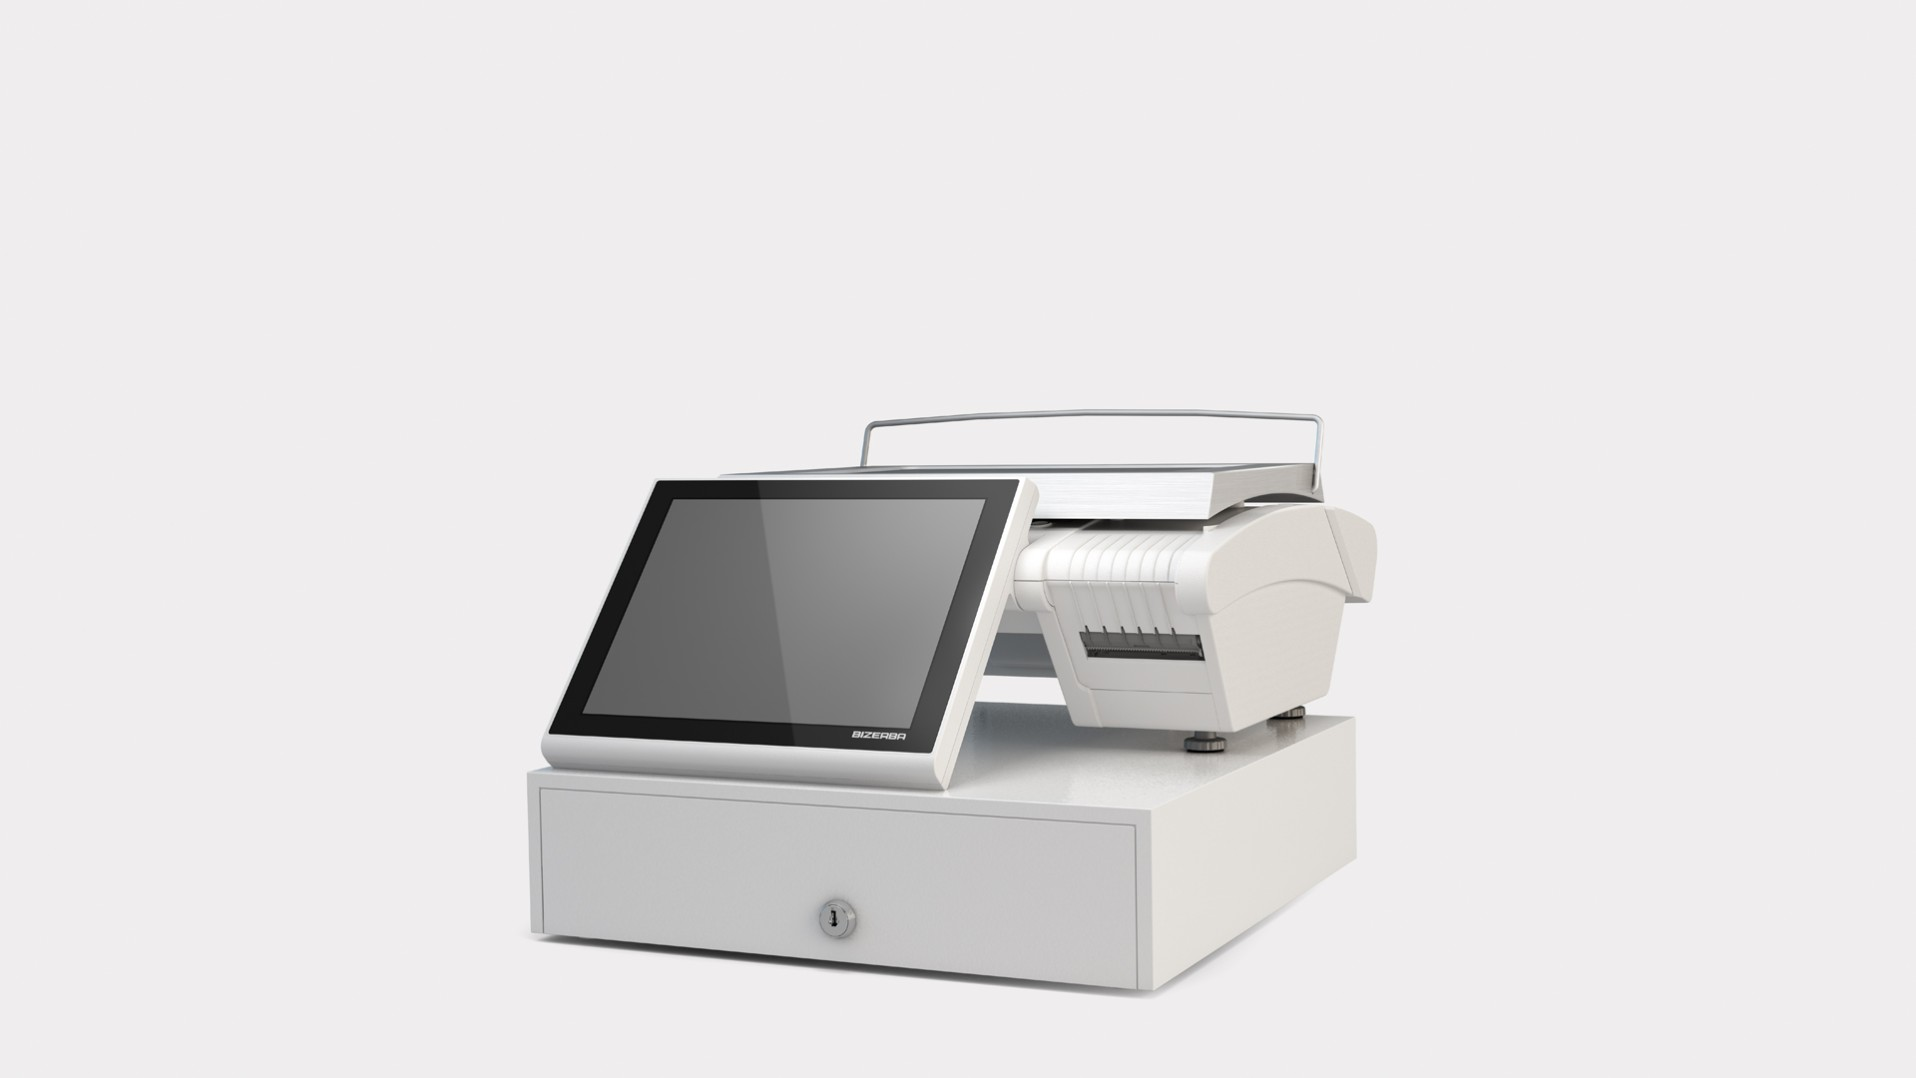 KH II 100 Pro with cash drawer